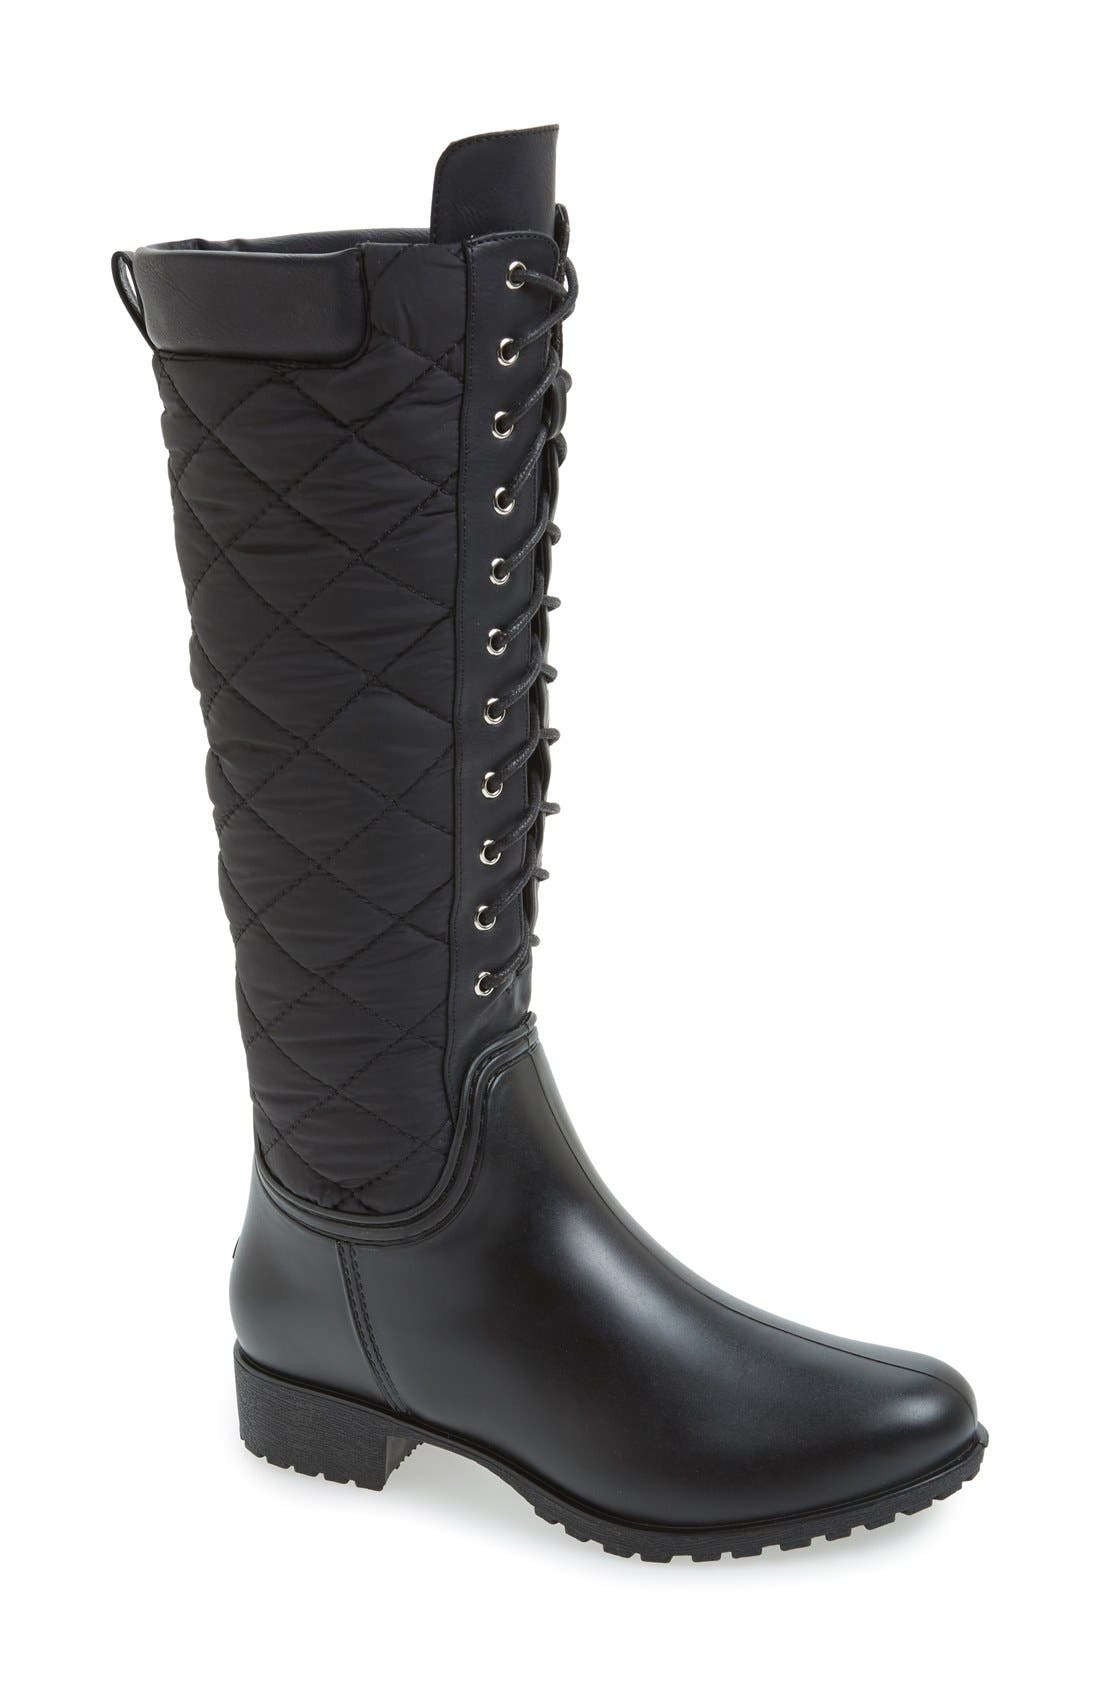 Tofino Quilted Tall Waterproof Rain Boot,                             Main thumbnail 1, color,                             001